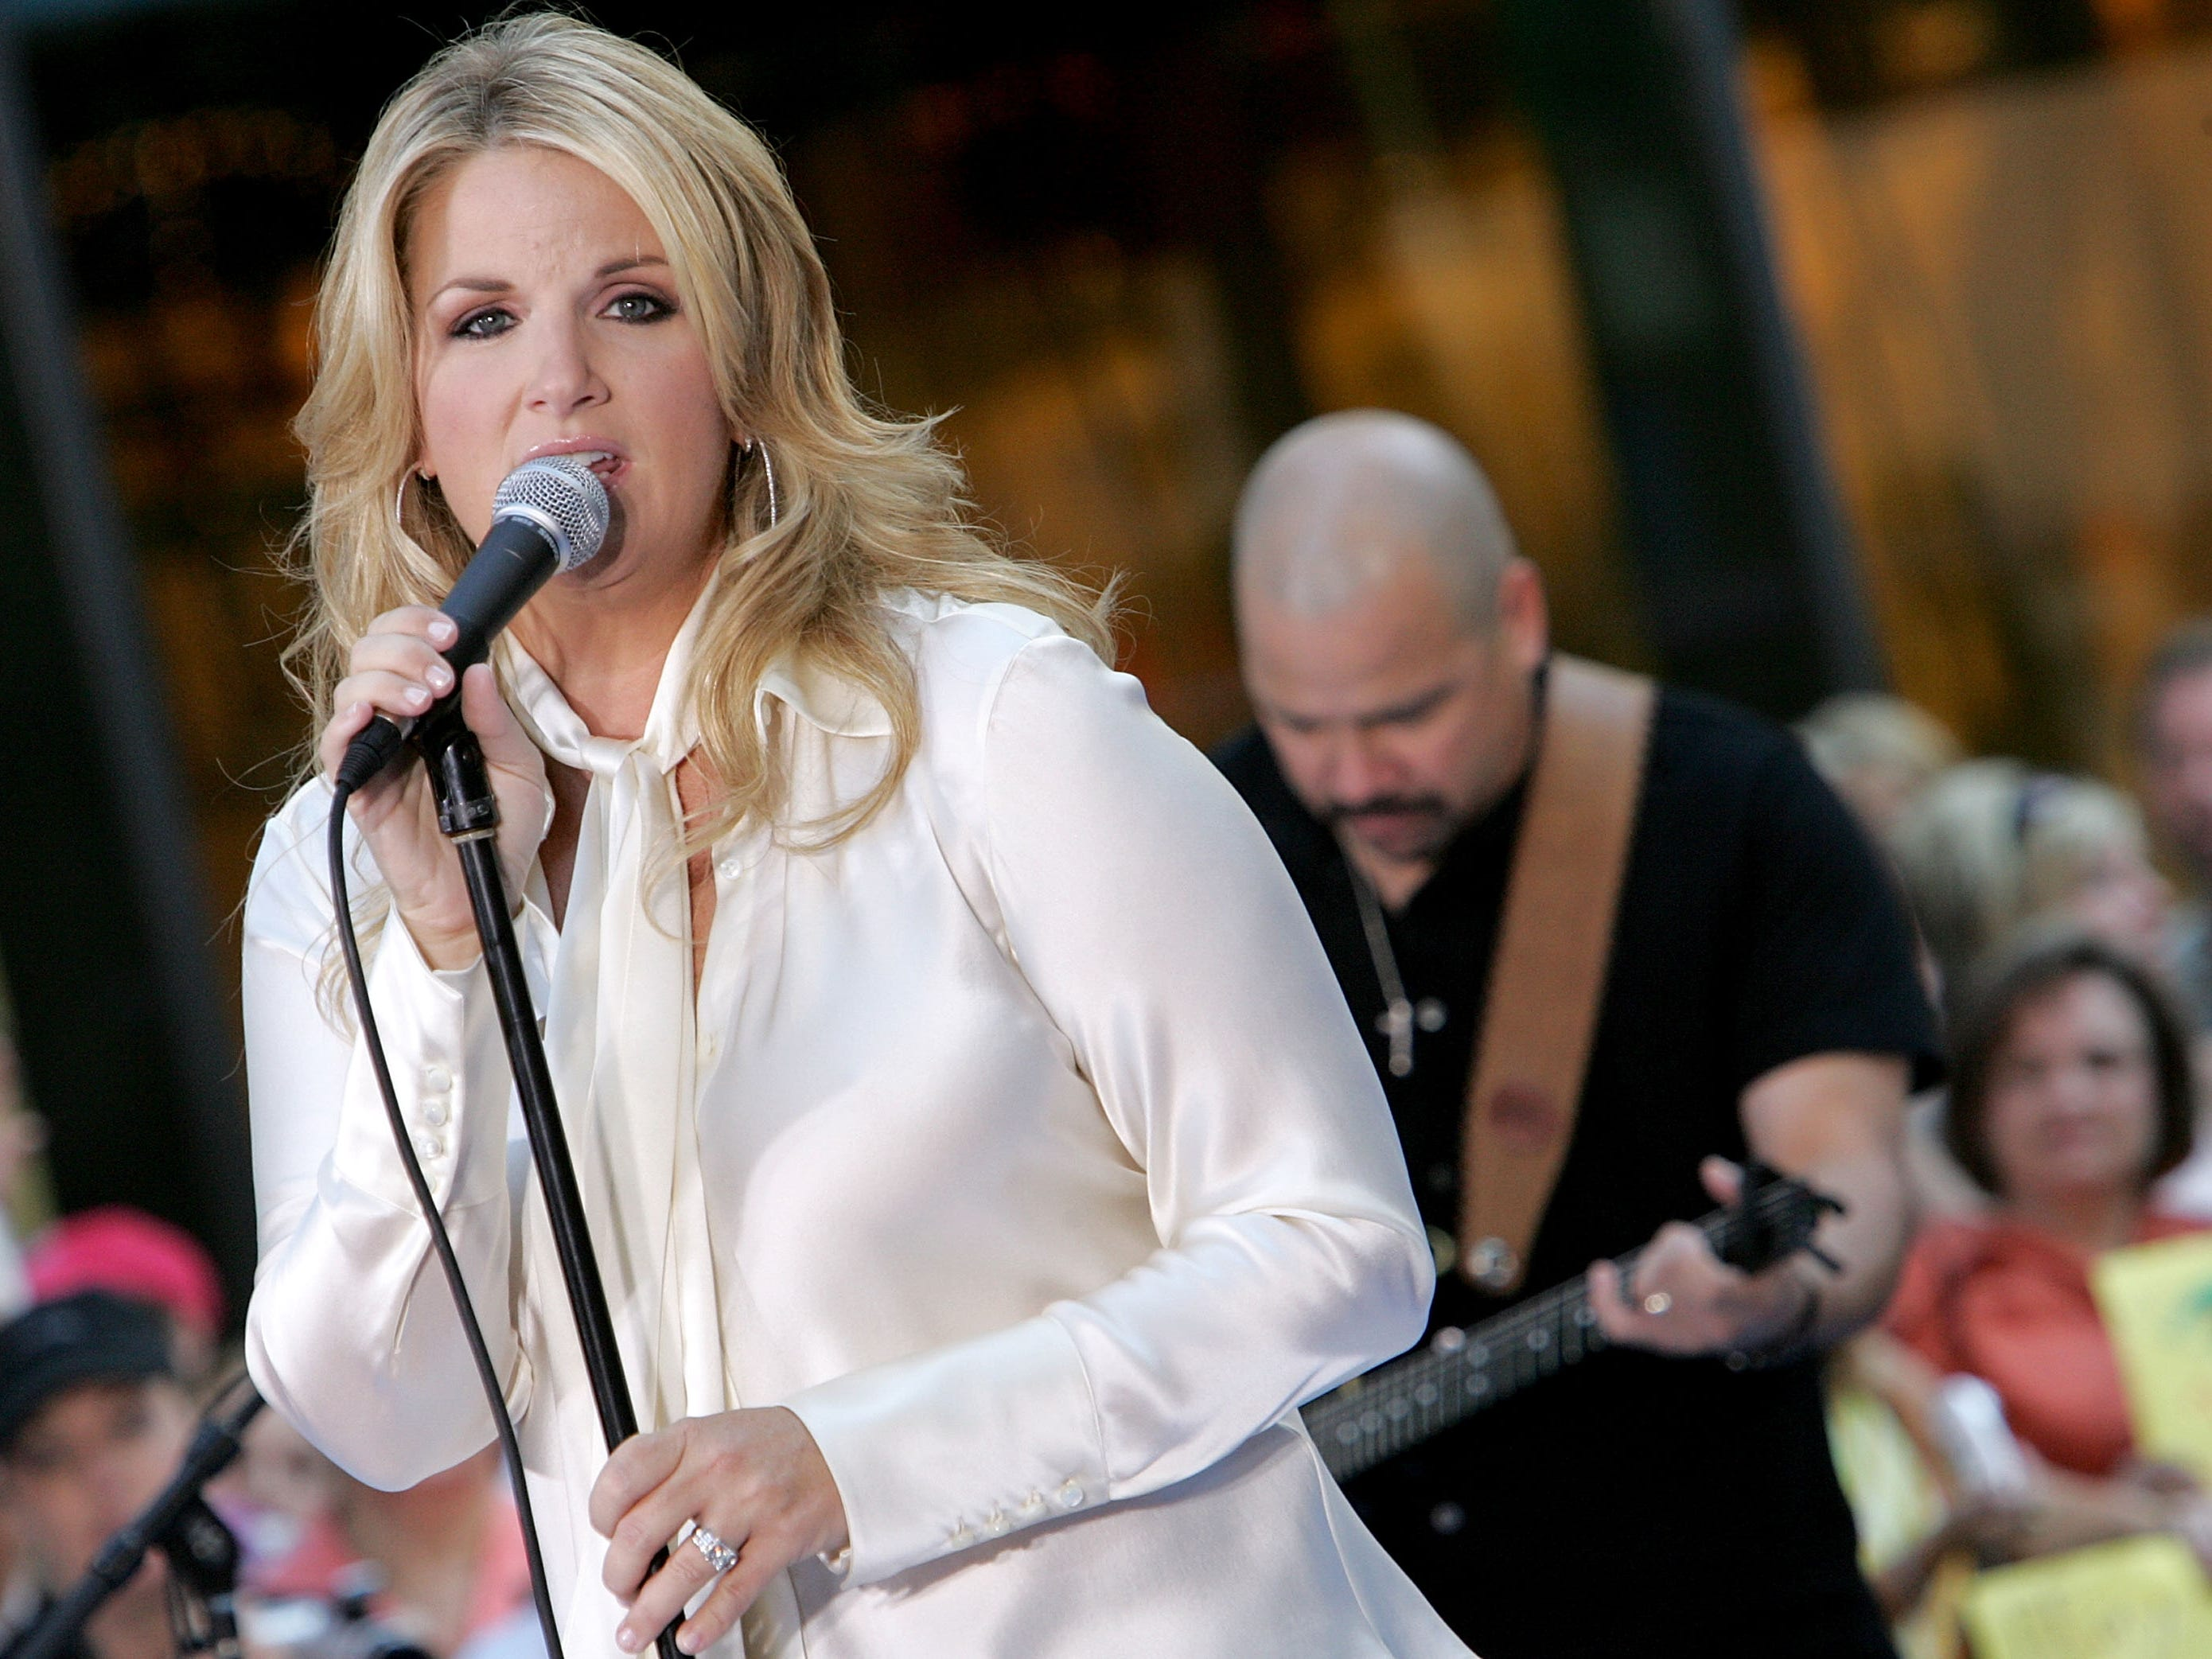 """Trisha Yearwood performs during the Toyota Concert Series on the """"Today"""" show September 2, 2005 in New York City."""